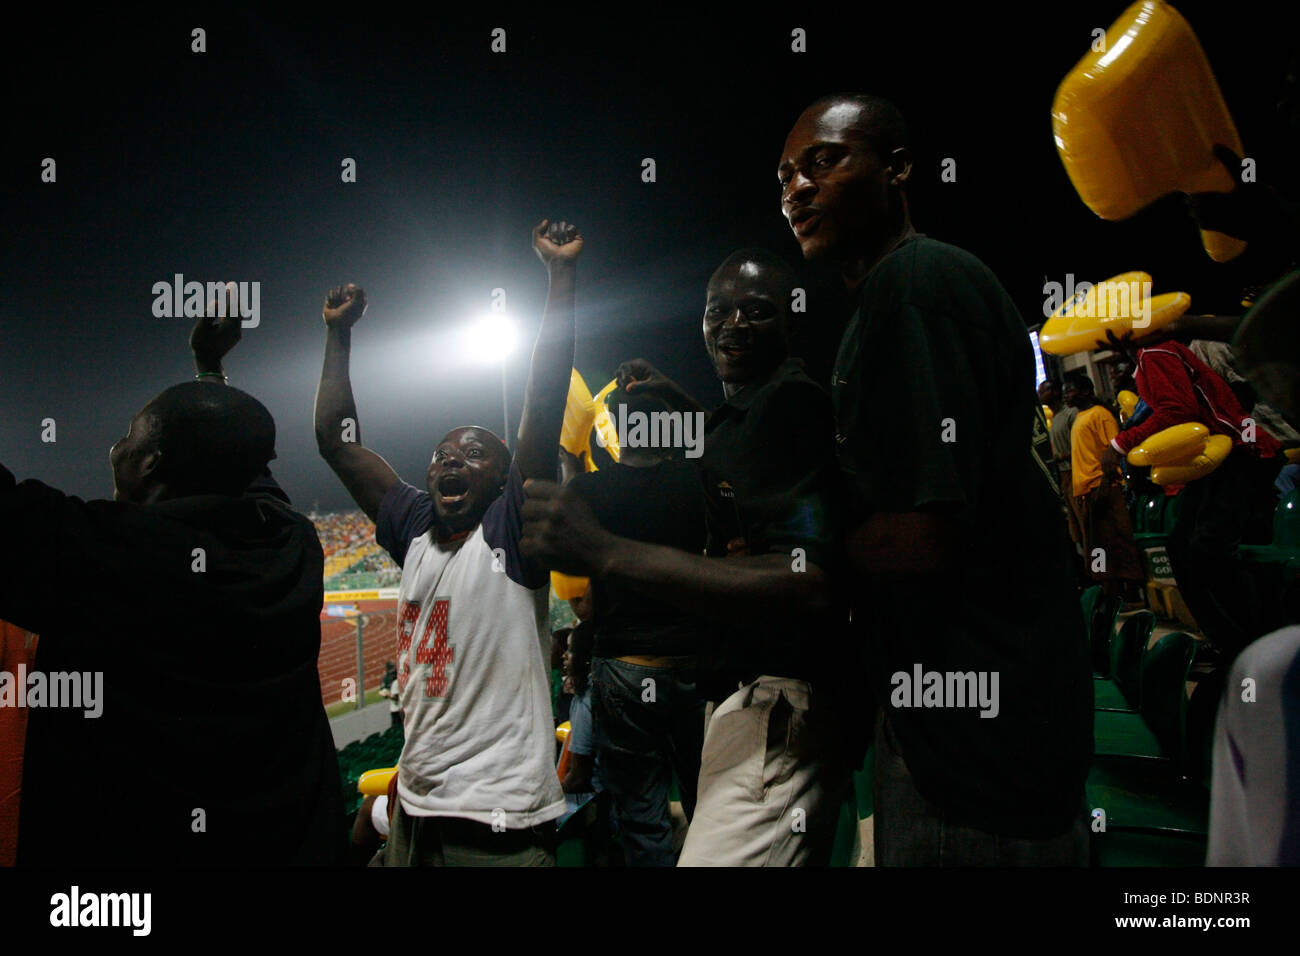 Ivory Coast Fans and supporters cheer a goal. 3rd place match between Ghana and Ivory Coast. African Cup of Nations. - Stock Image